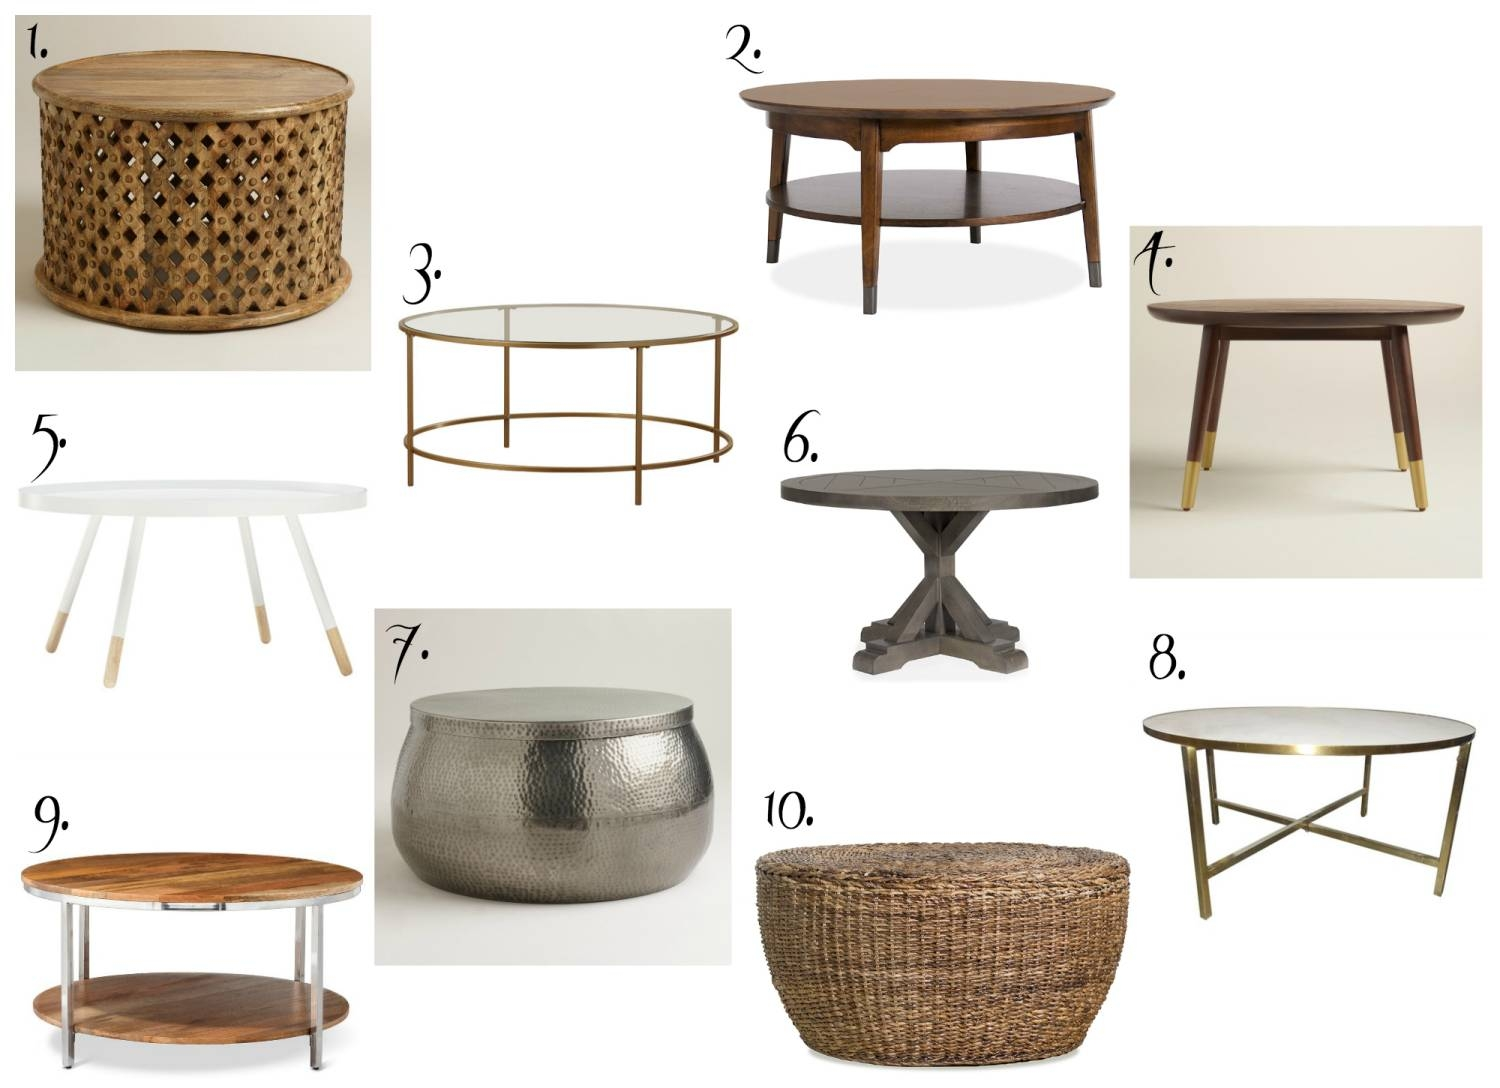 Affordable Round Coffee Tables - The Chronicles Of Home with regard to Round Coffee Tables (Image 2 of 30)